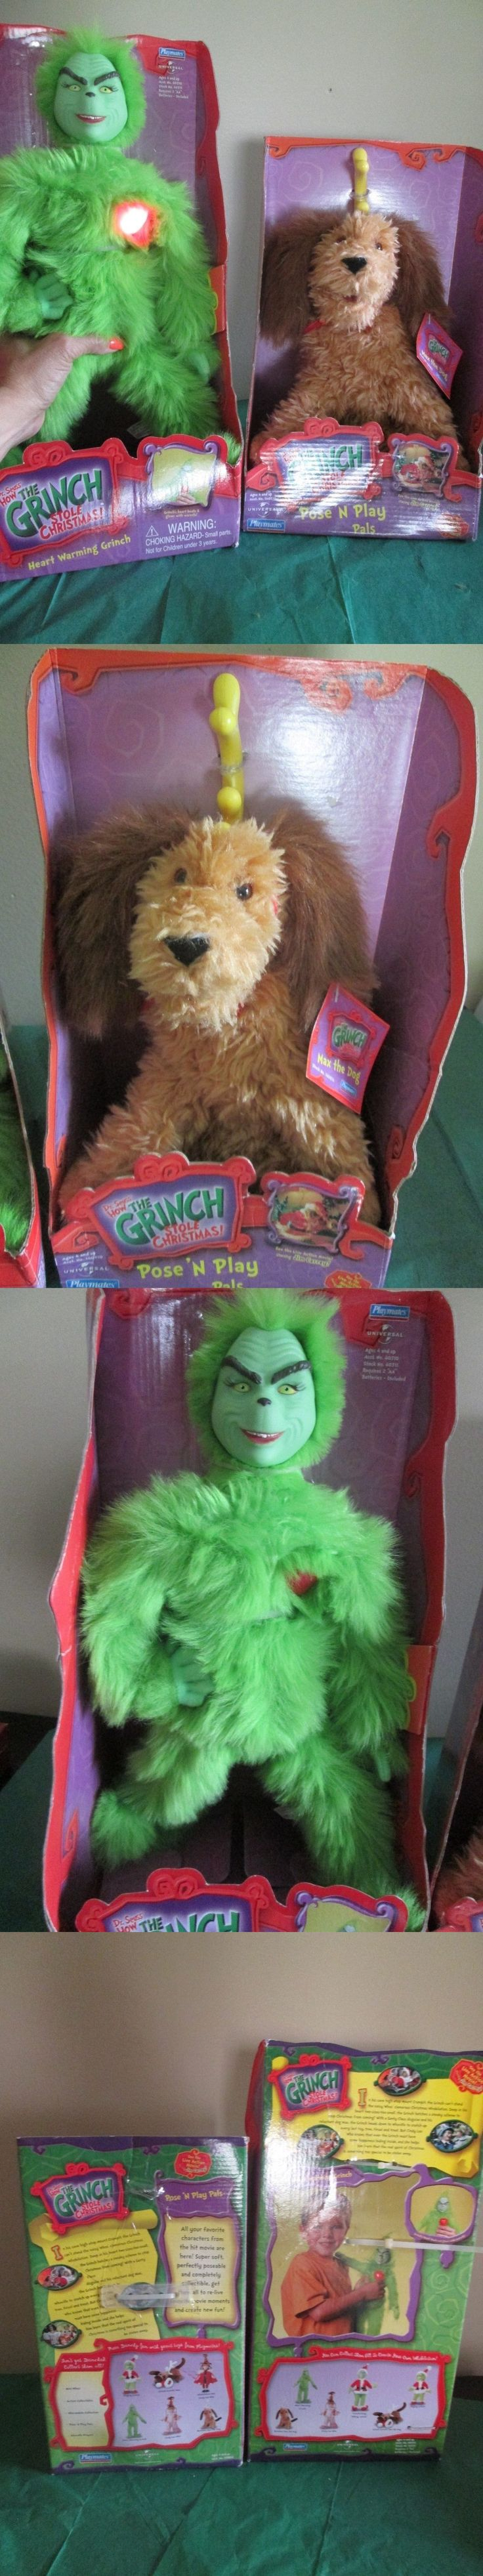 Dr Seuss 20906: Nib How The Grinch Stole Christmas Heart Warming Grinch And Max The Dog Poseandplay -> BUY IT NOW ONLY: $64.95 on eBay!